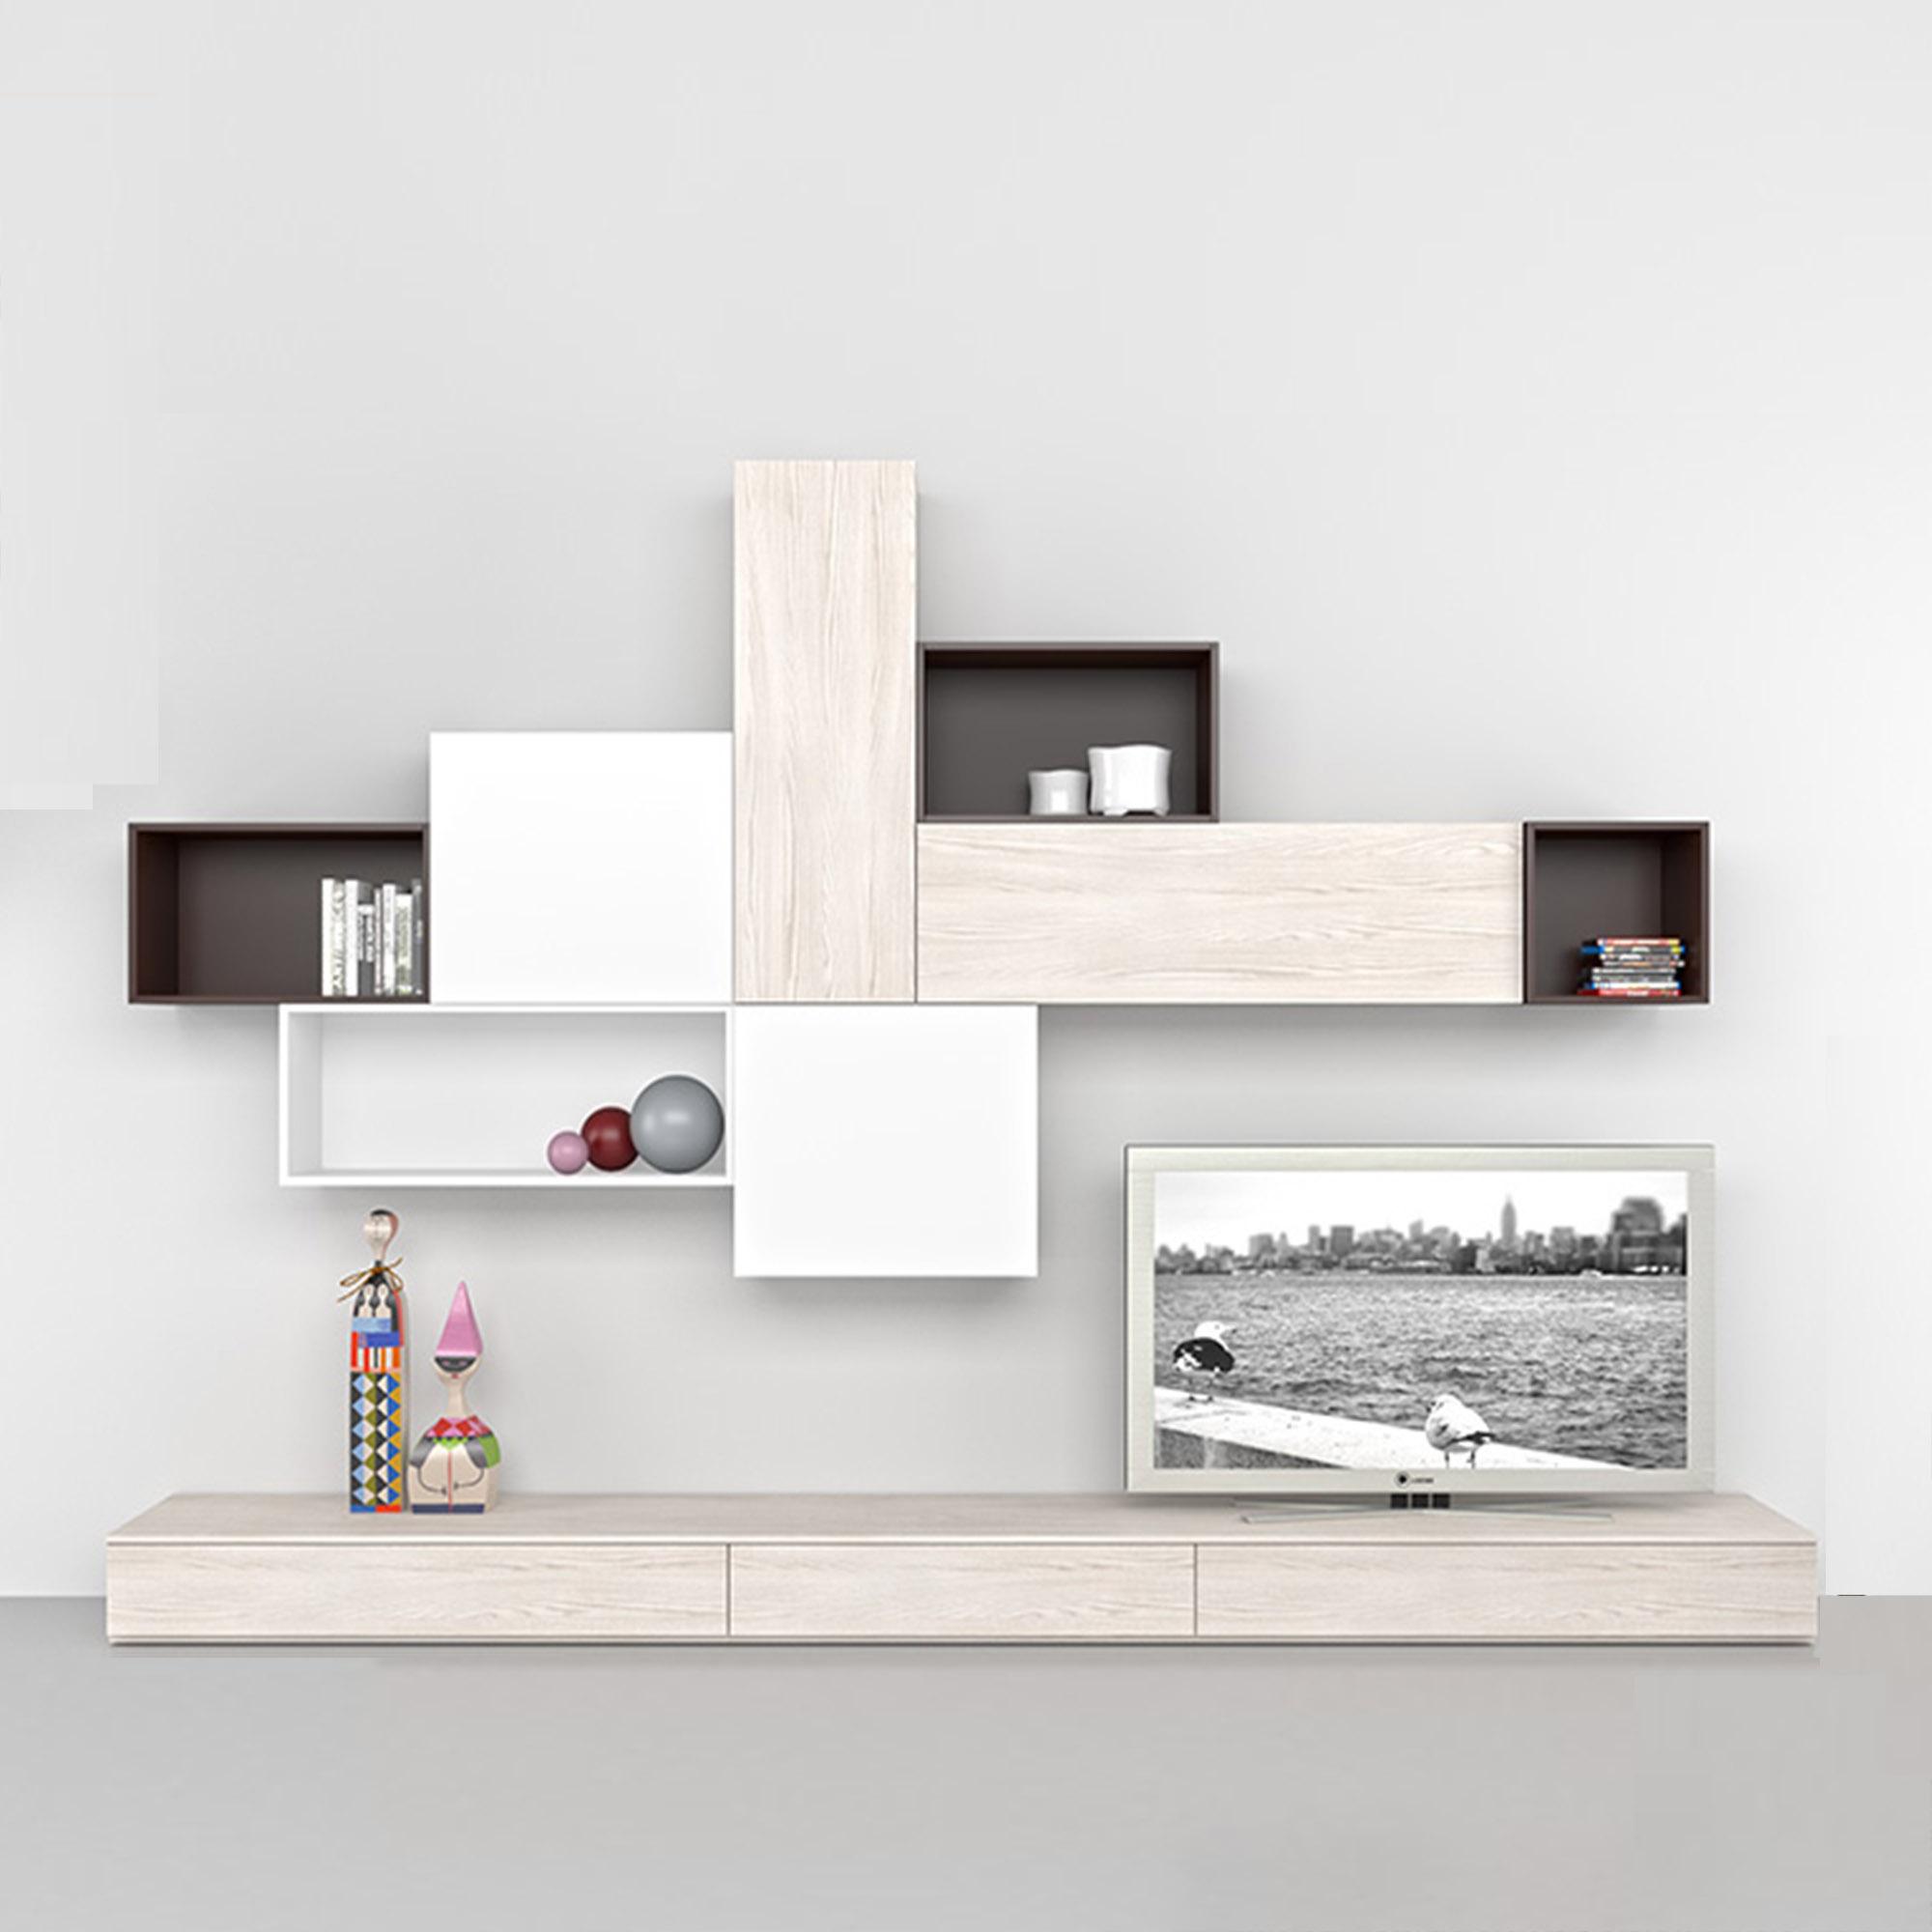 italian-contemporary-furniture-coffee-tv-wall-mounted-unit-media-stand-lounge-living-room-by-mobilstella.jpg